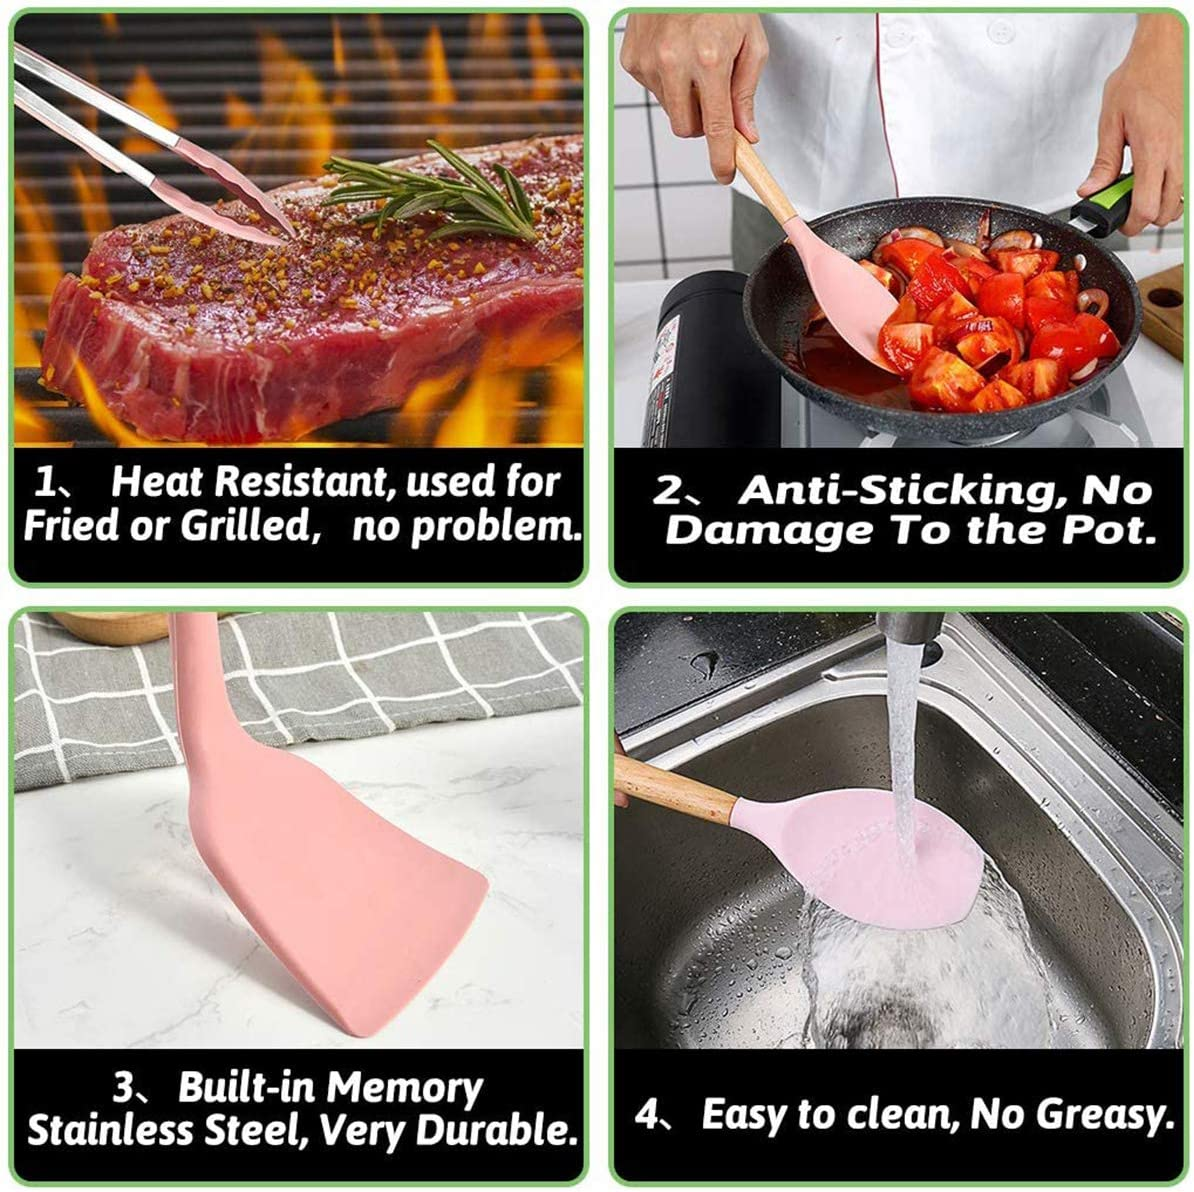 Whisk Turner Tongs Wonninek Kitchen Utensils Silicone and Wood Handle Heat-Resistant Non-Stick Cooking Tools 11Pack with Plastic Holder Spatula Ladle Brush Spoon Pink